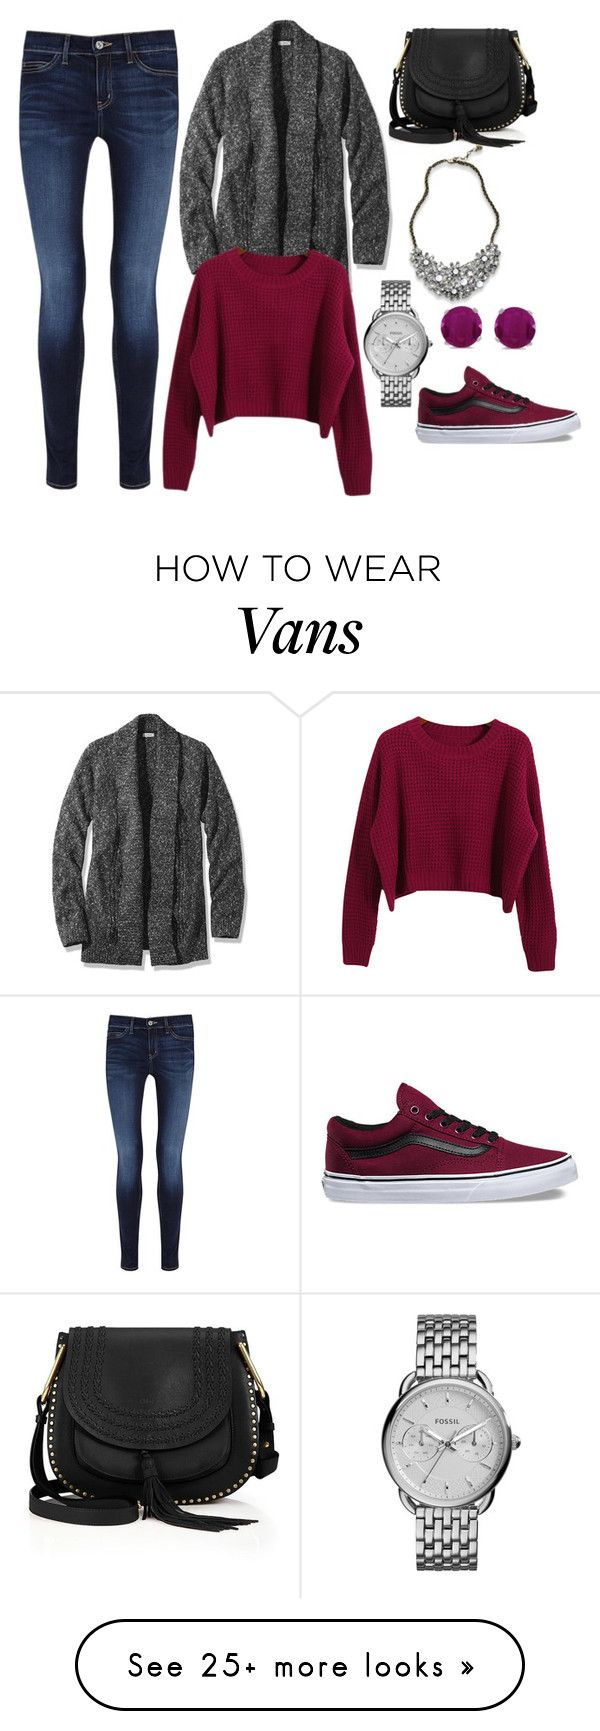 """Untitled #10824"" by beatrizibelo on Polyvore featuring M.i.h Jeans, Abercrombie & Fitch, L.L.Bean, Chloé, FOSSIL, Chicnova Fashion, BillyTheTree and Vans"